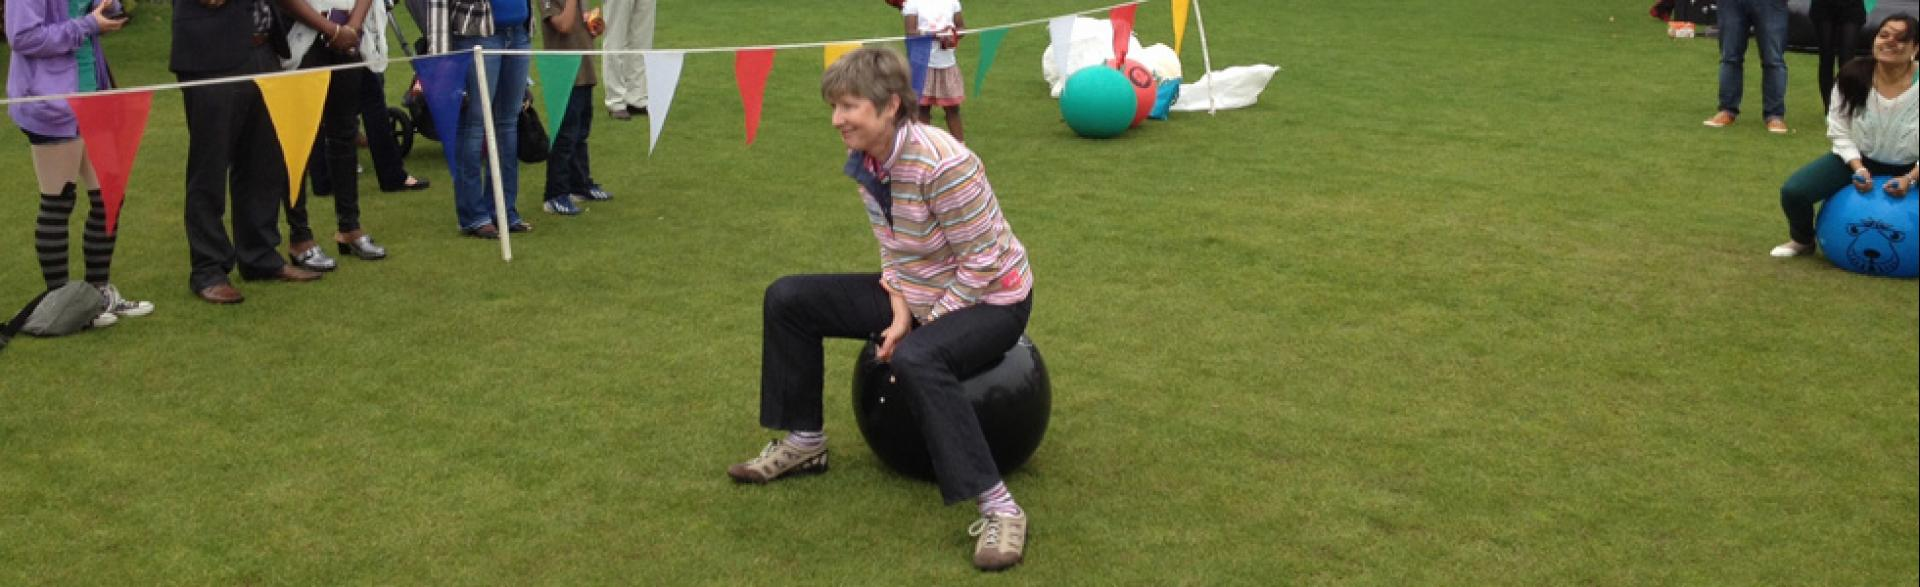 Corporate Fun Day, Aberdeen, September 2014